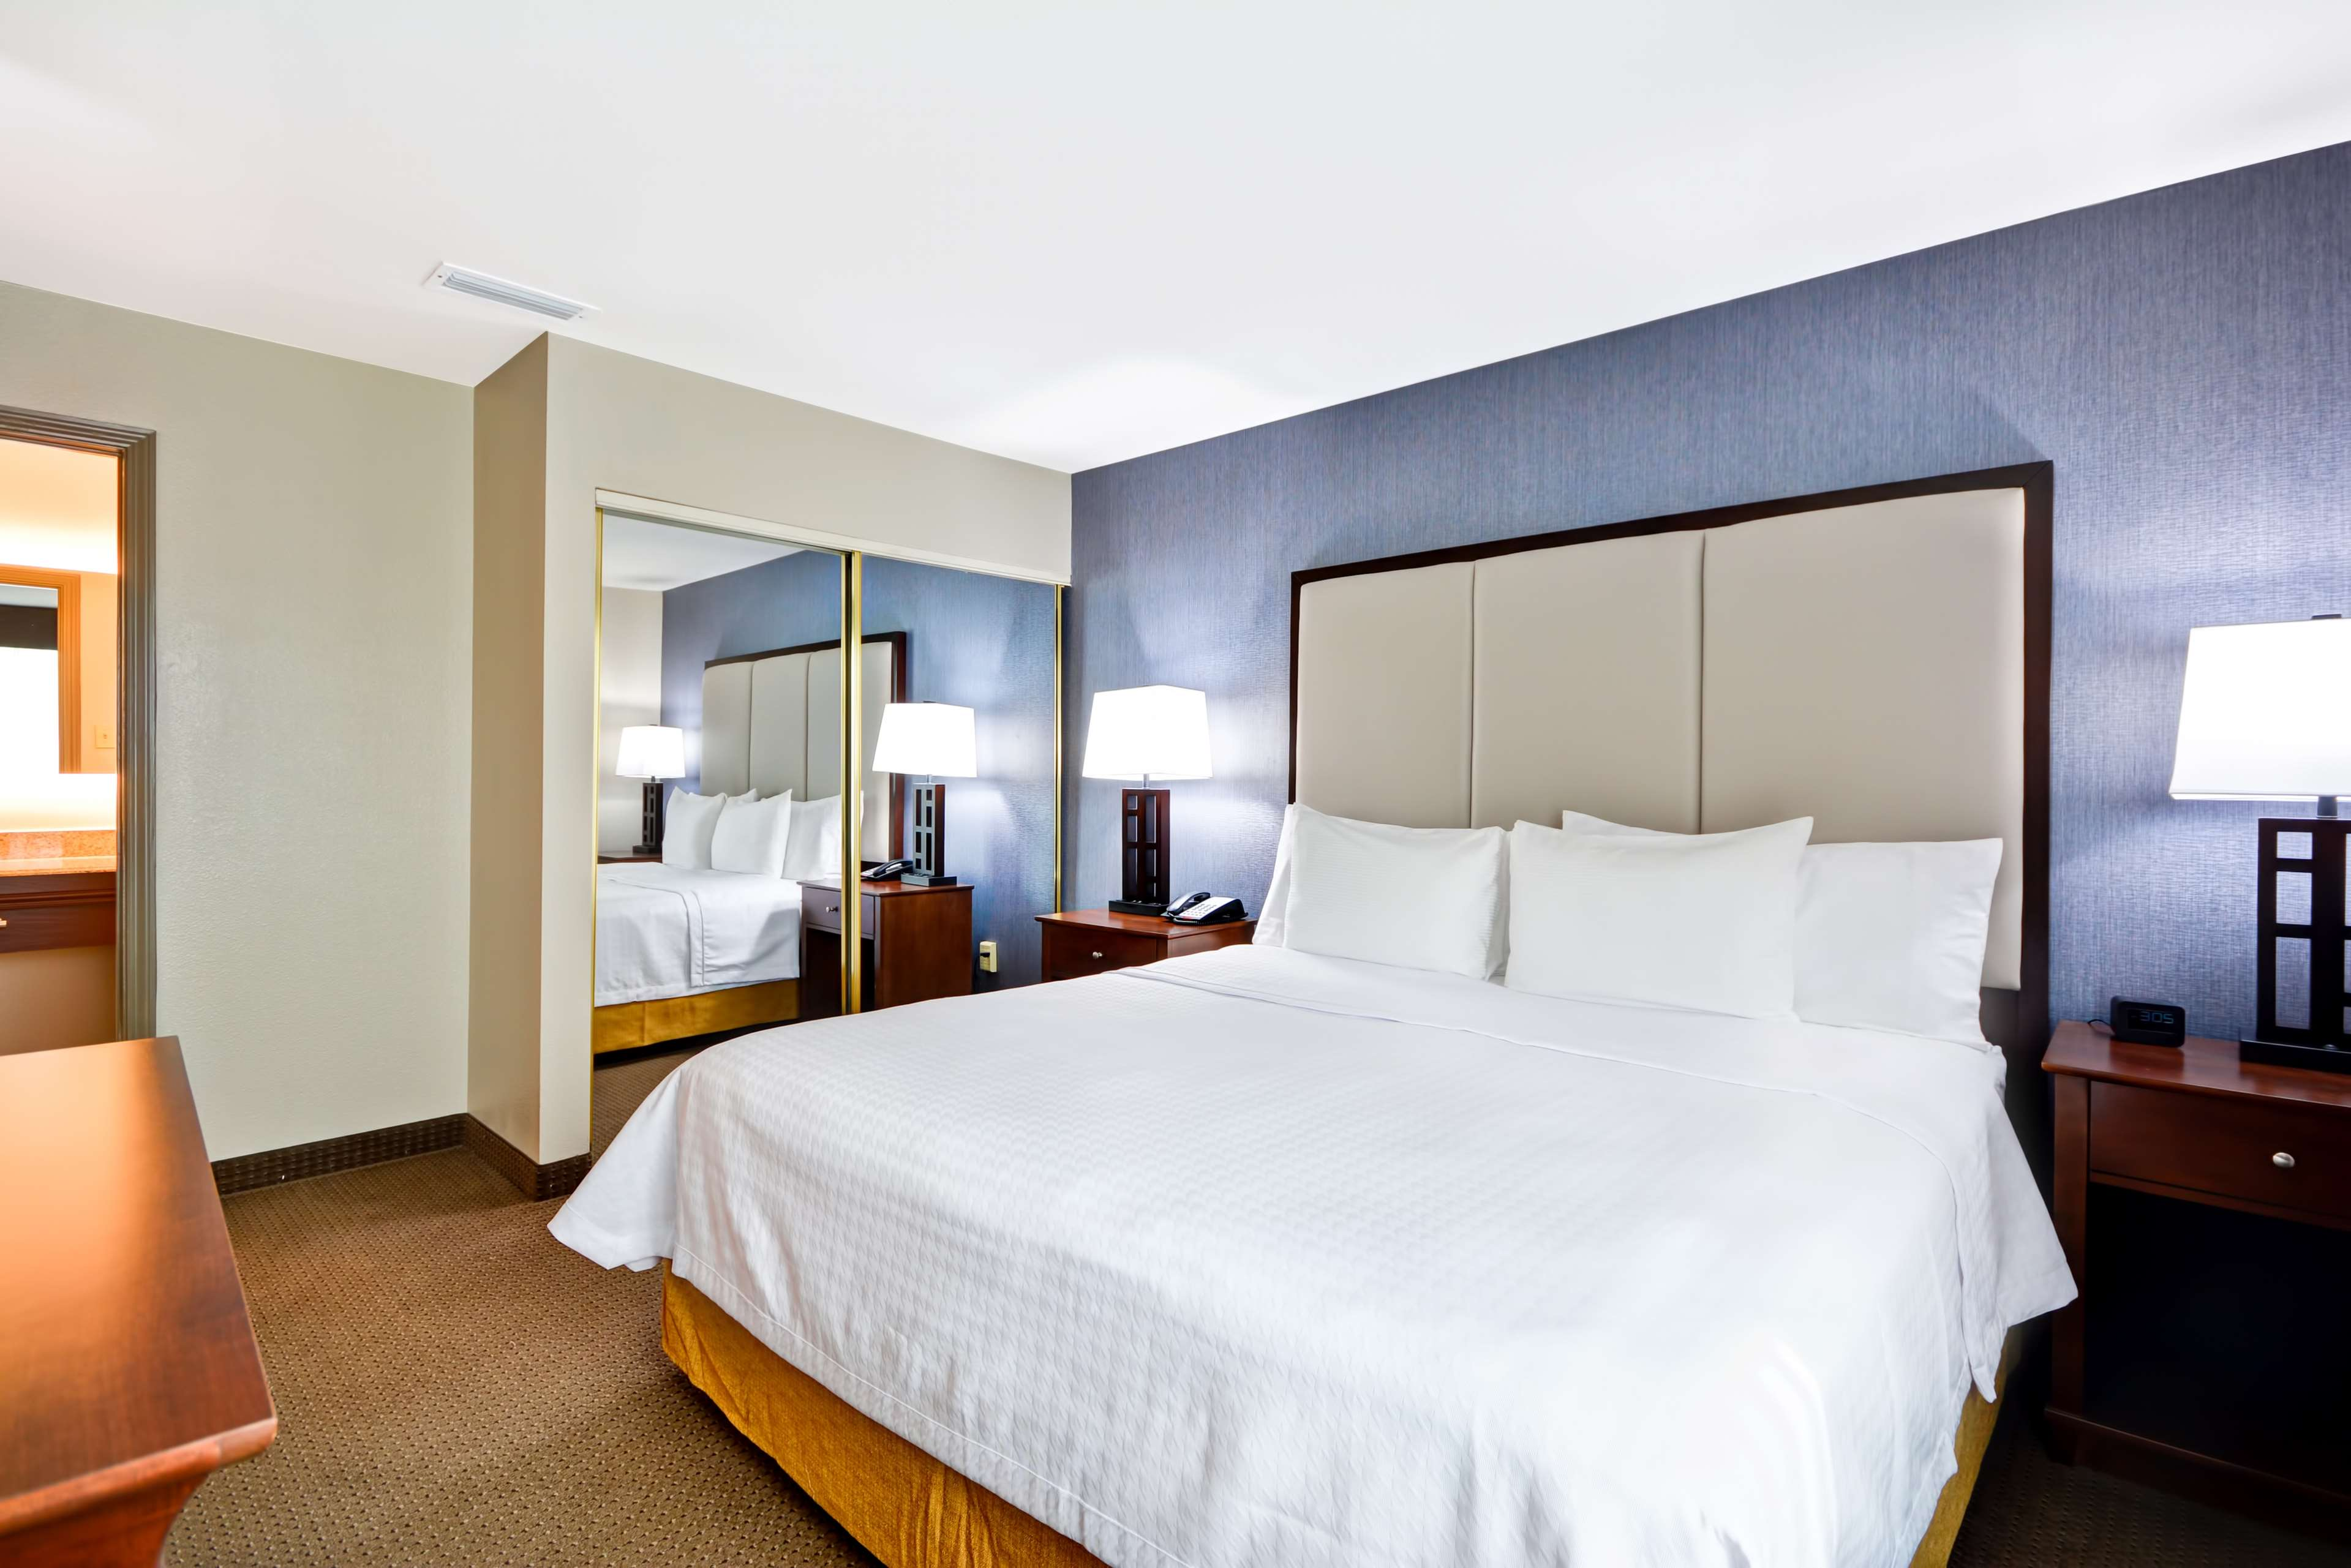 Homewood Suites by Hilton Dallas-Lewisville image 18